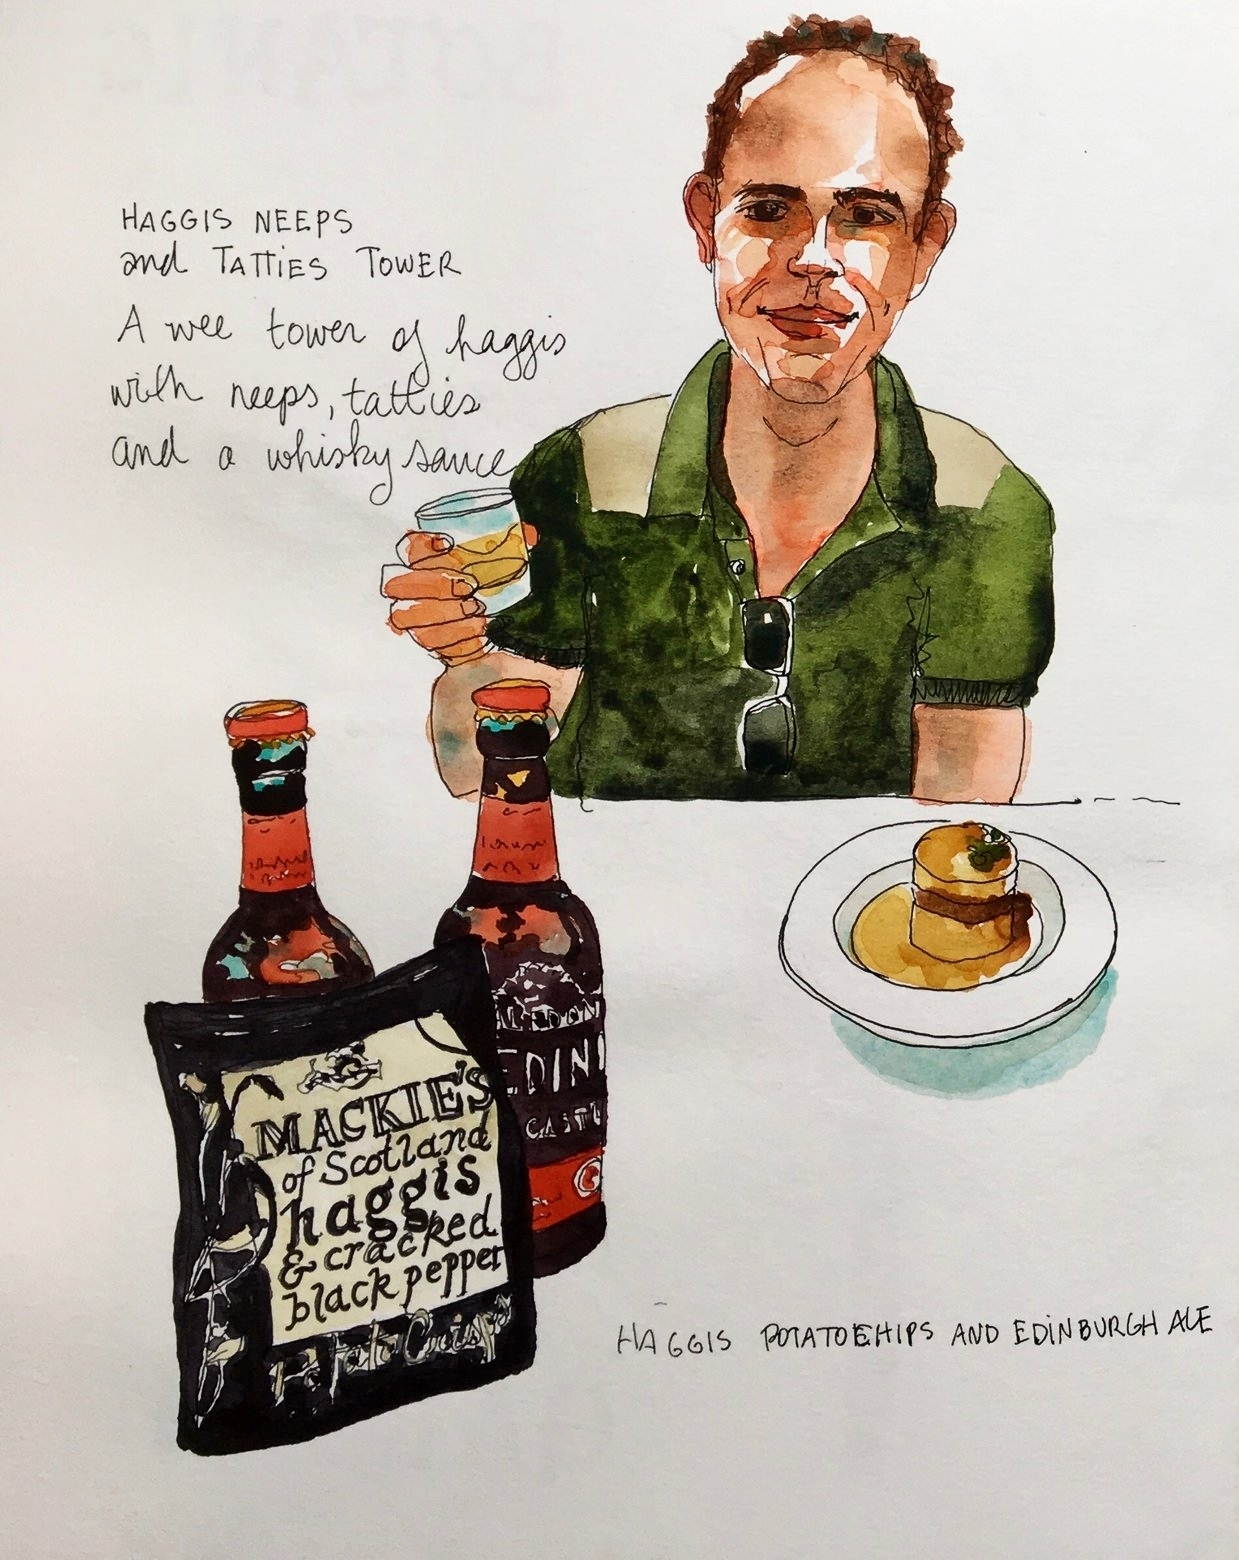 This sketch doesn't look much like my husband, Dave, but it still makes me smile every time I see it. Dave is an adventurous eater and the only one to try haggis. On several occasions.